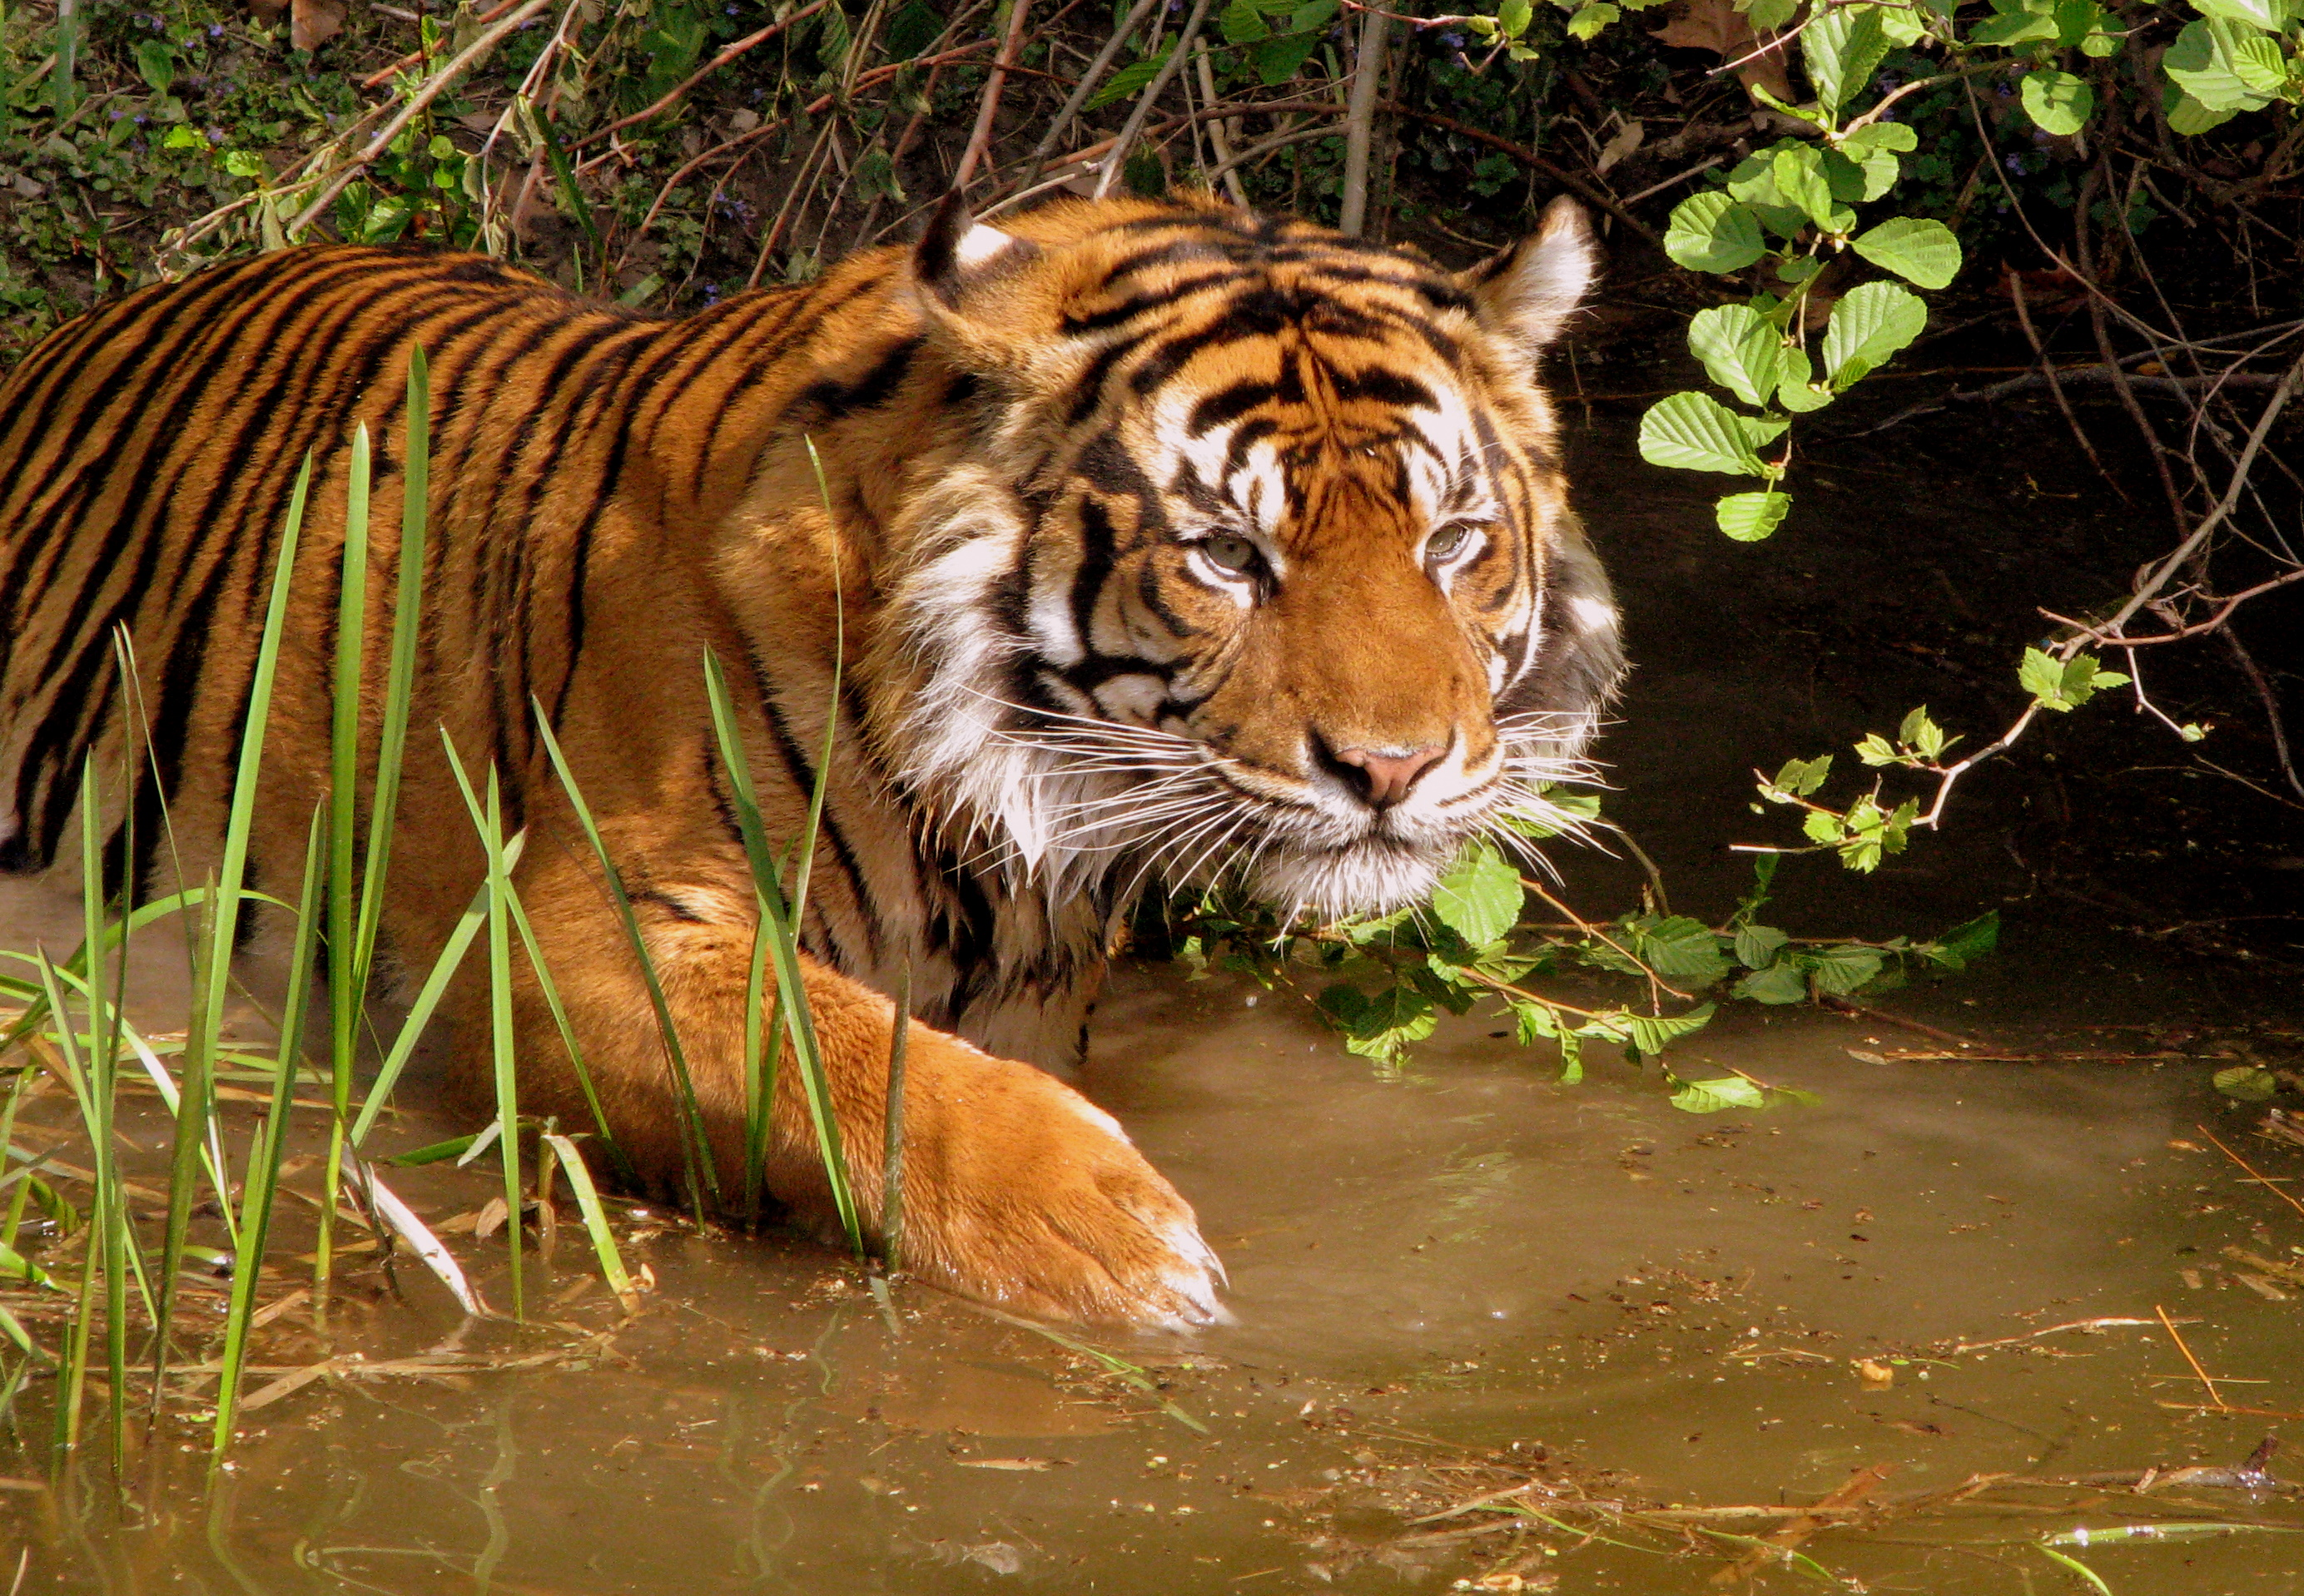 pictures of tigers in the wild